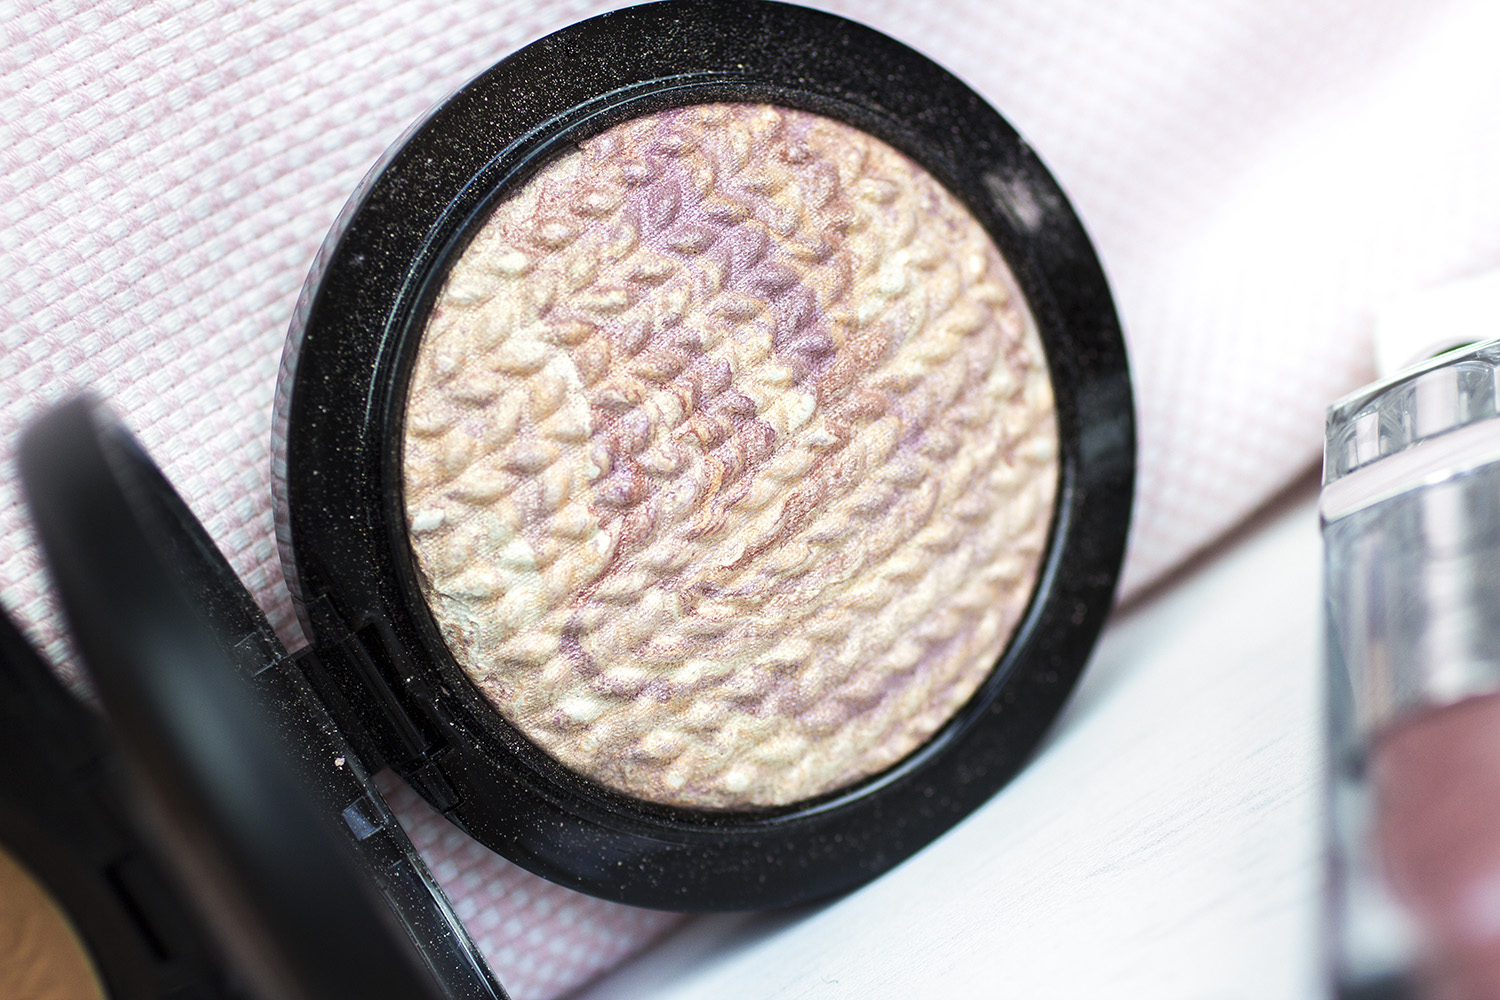 Mineralize Skinfinish / Perfect Topping - MAC